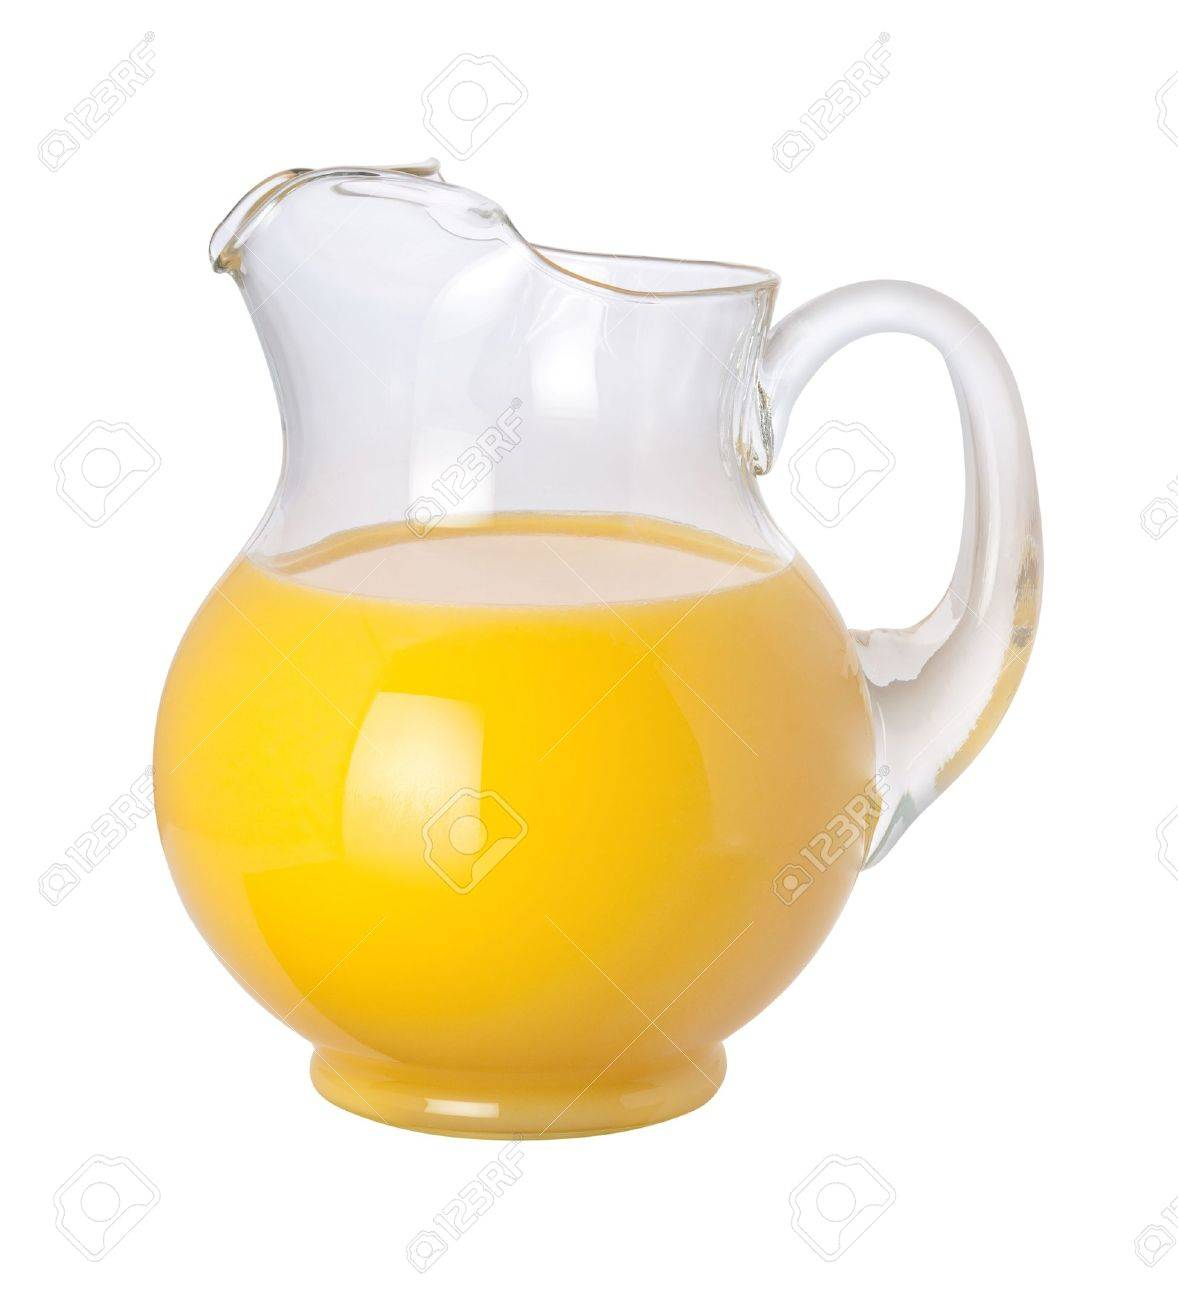 orange juice pitcher stock photo picture and royalty free image  - orange juice pitcher stock photo